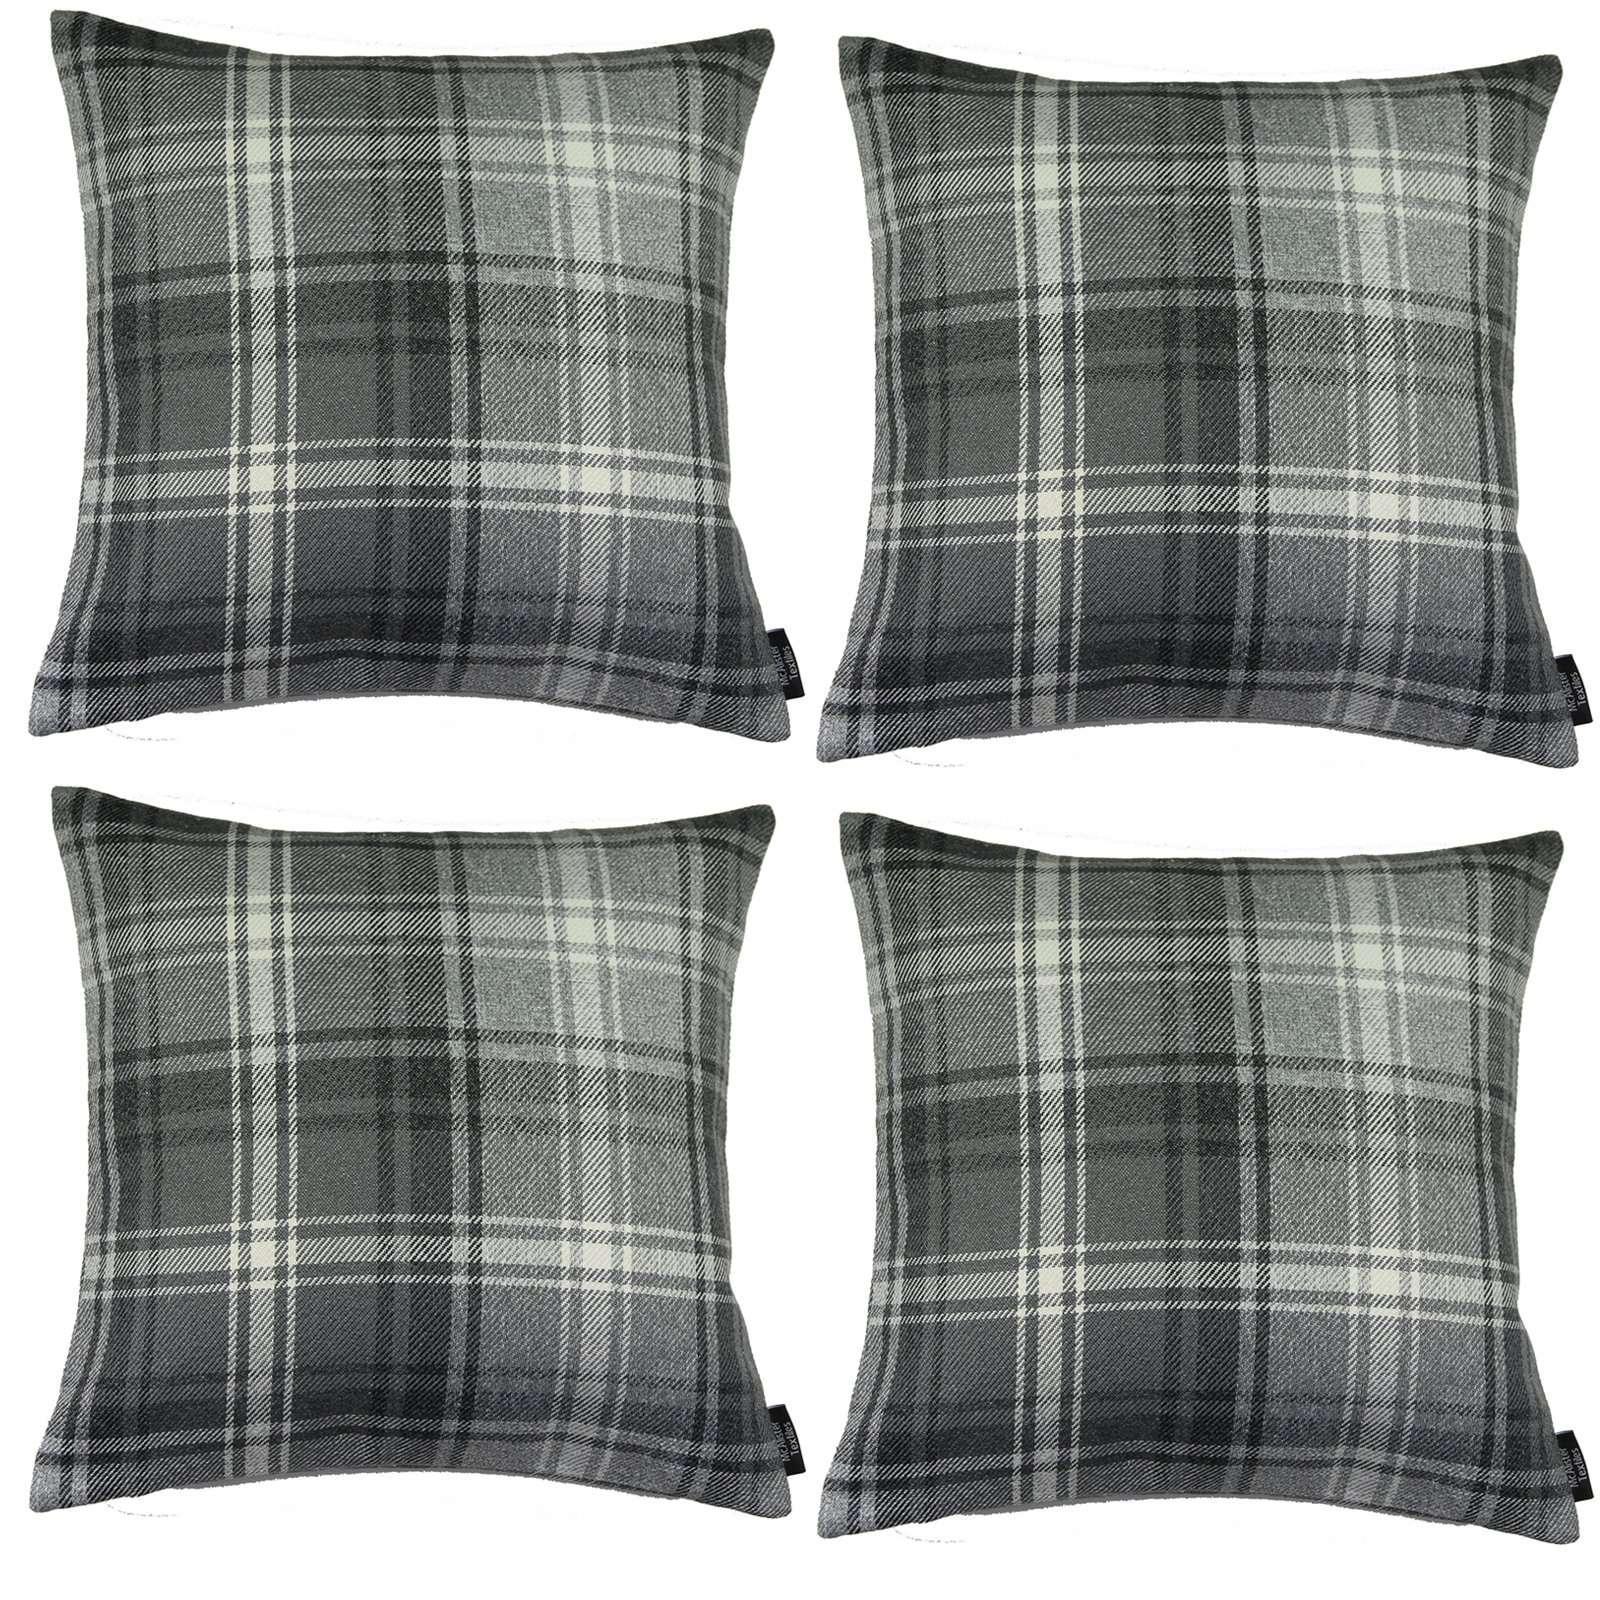 McAlister Textiles Angus Charcoal Grey Tartan 43cm x 43cm Cushion Sets Cushions and Covers Cushion Covers Set of 4